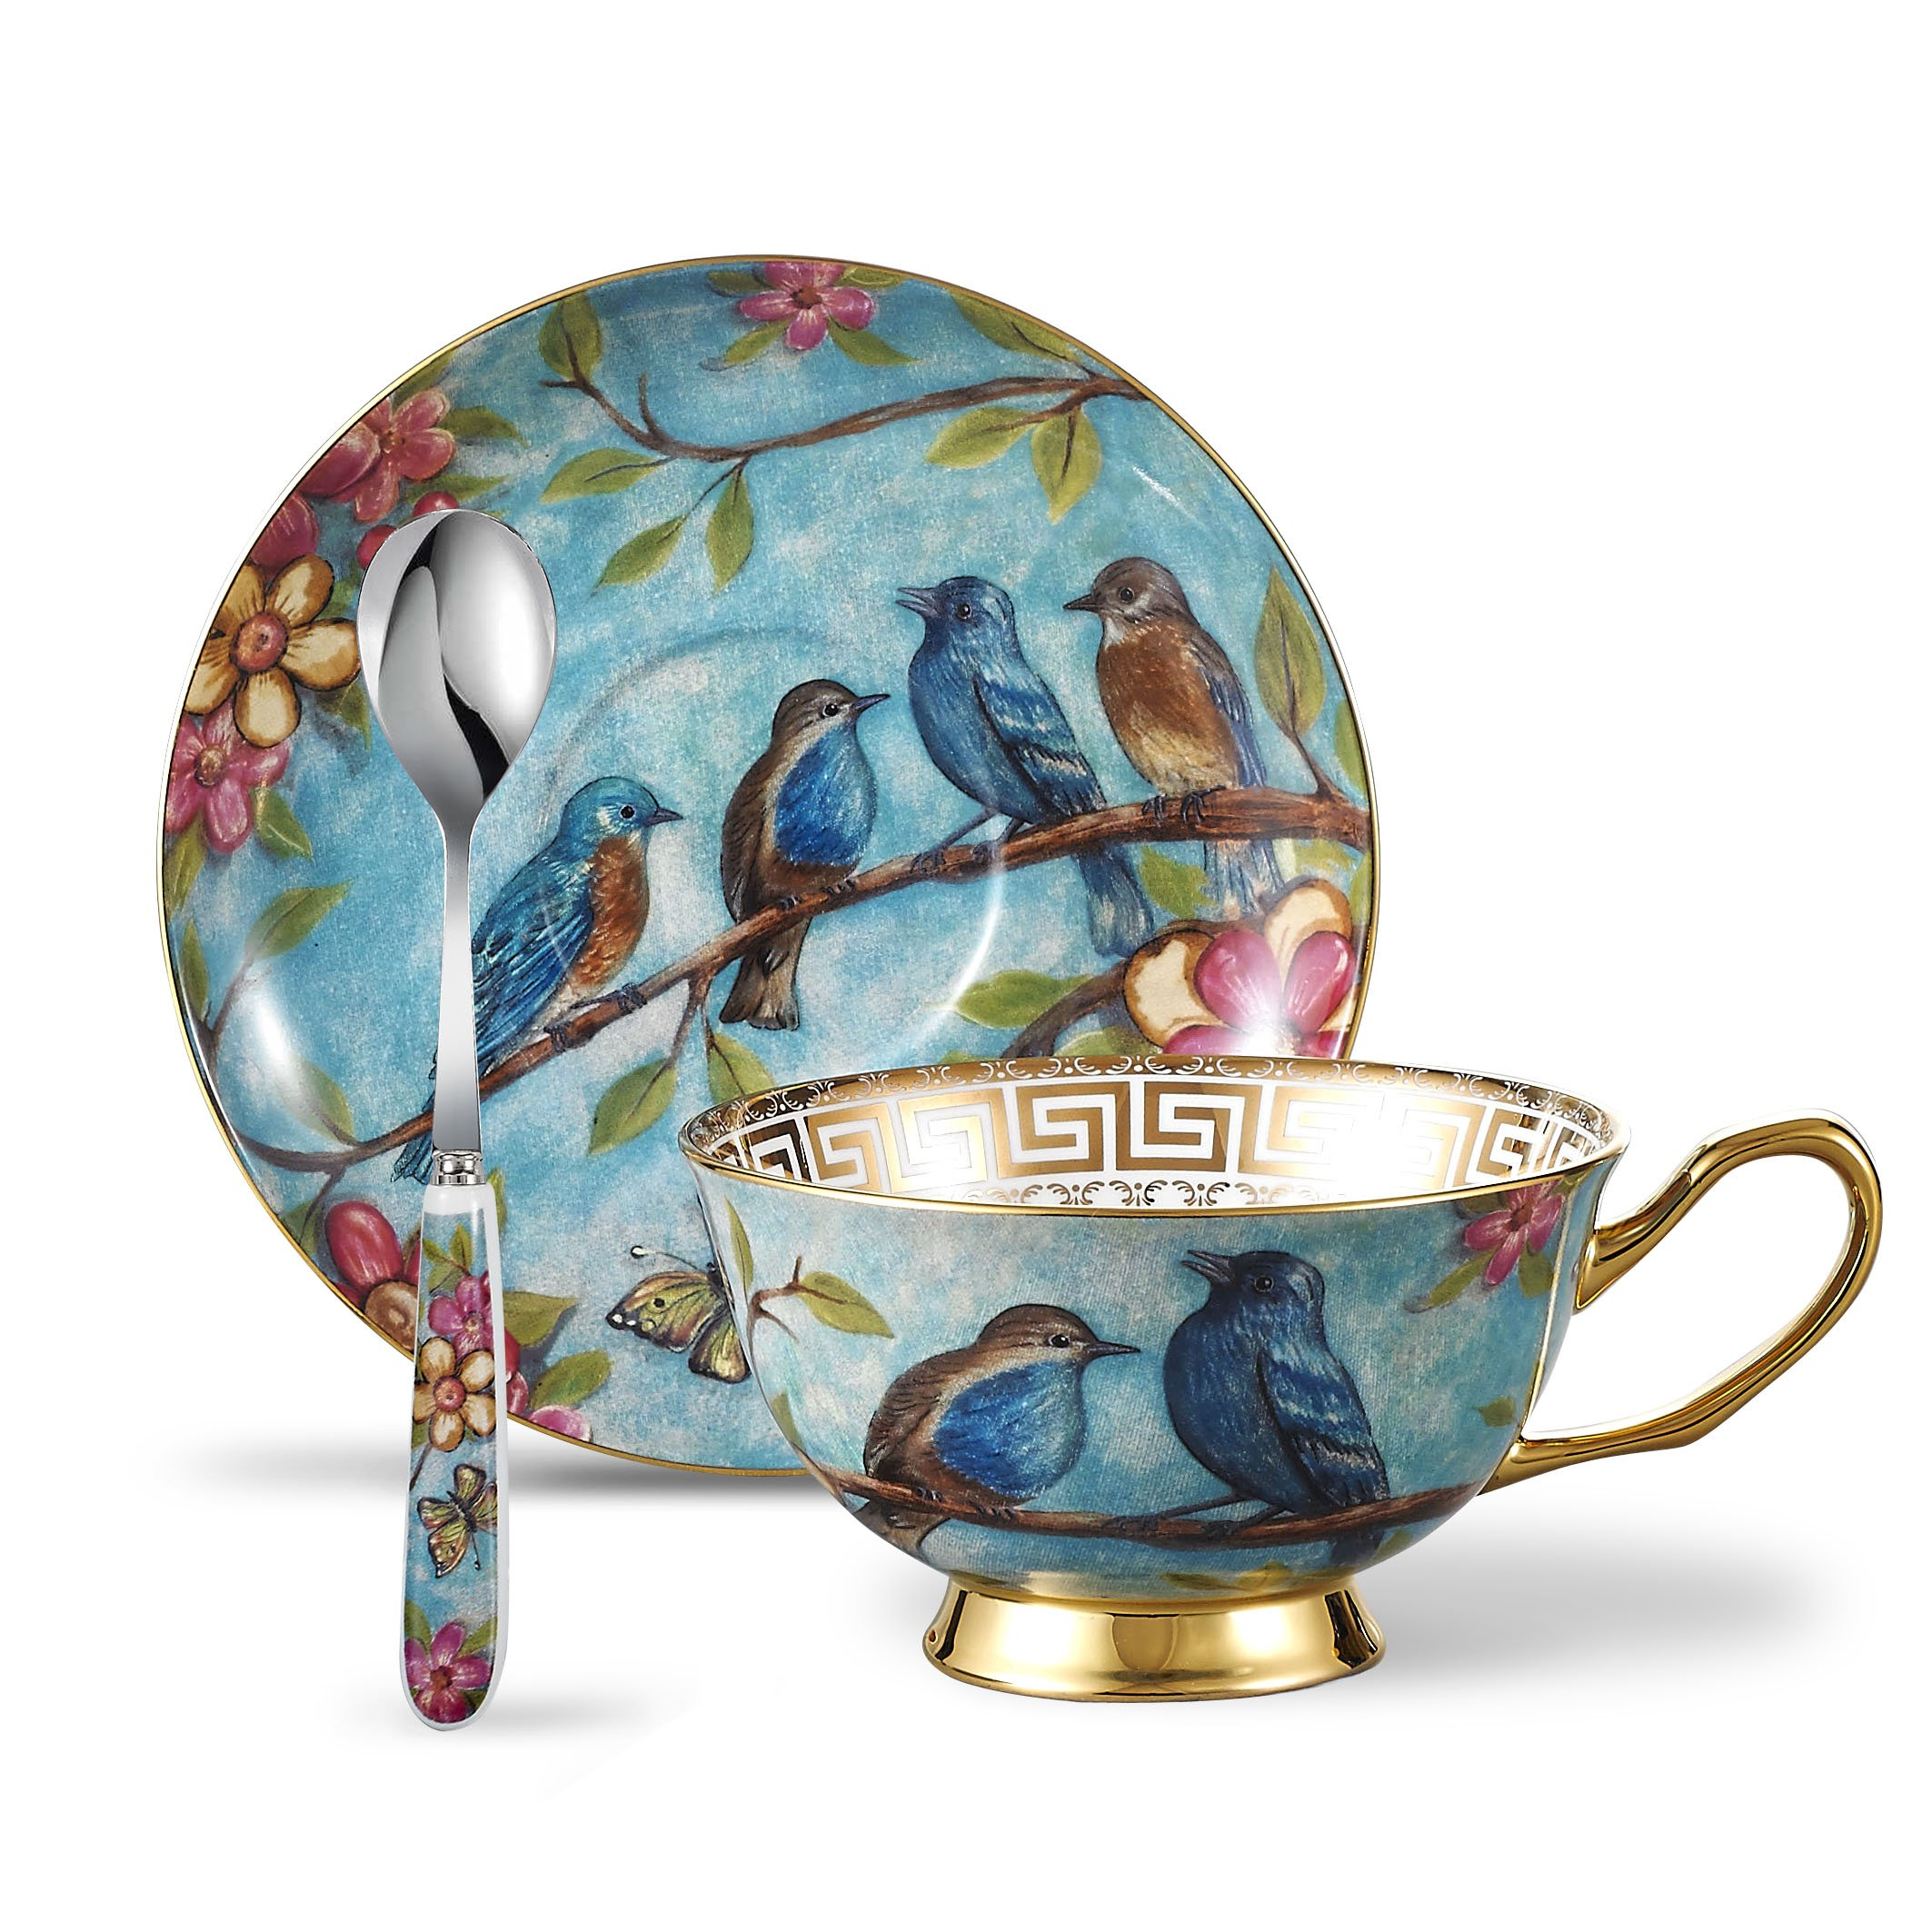 Panbado 3 Piece Bone China Tea Cup Saucer Set with Spoon Porcelain Gold Rimmed Teacup Coffee, Flower and Birds, 200 mL/6.8 oz, Blue Cup & Saucer, Dark